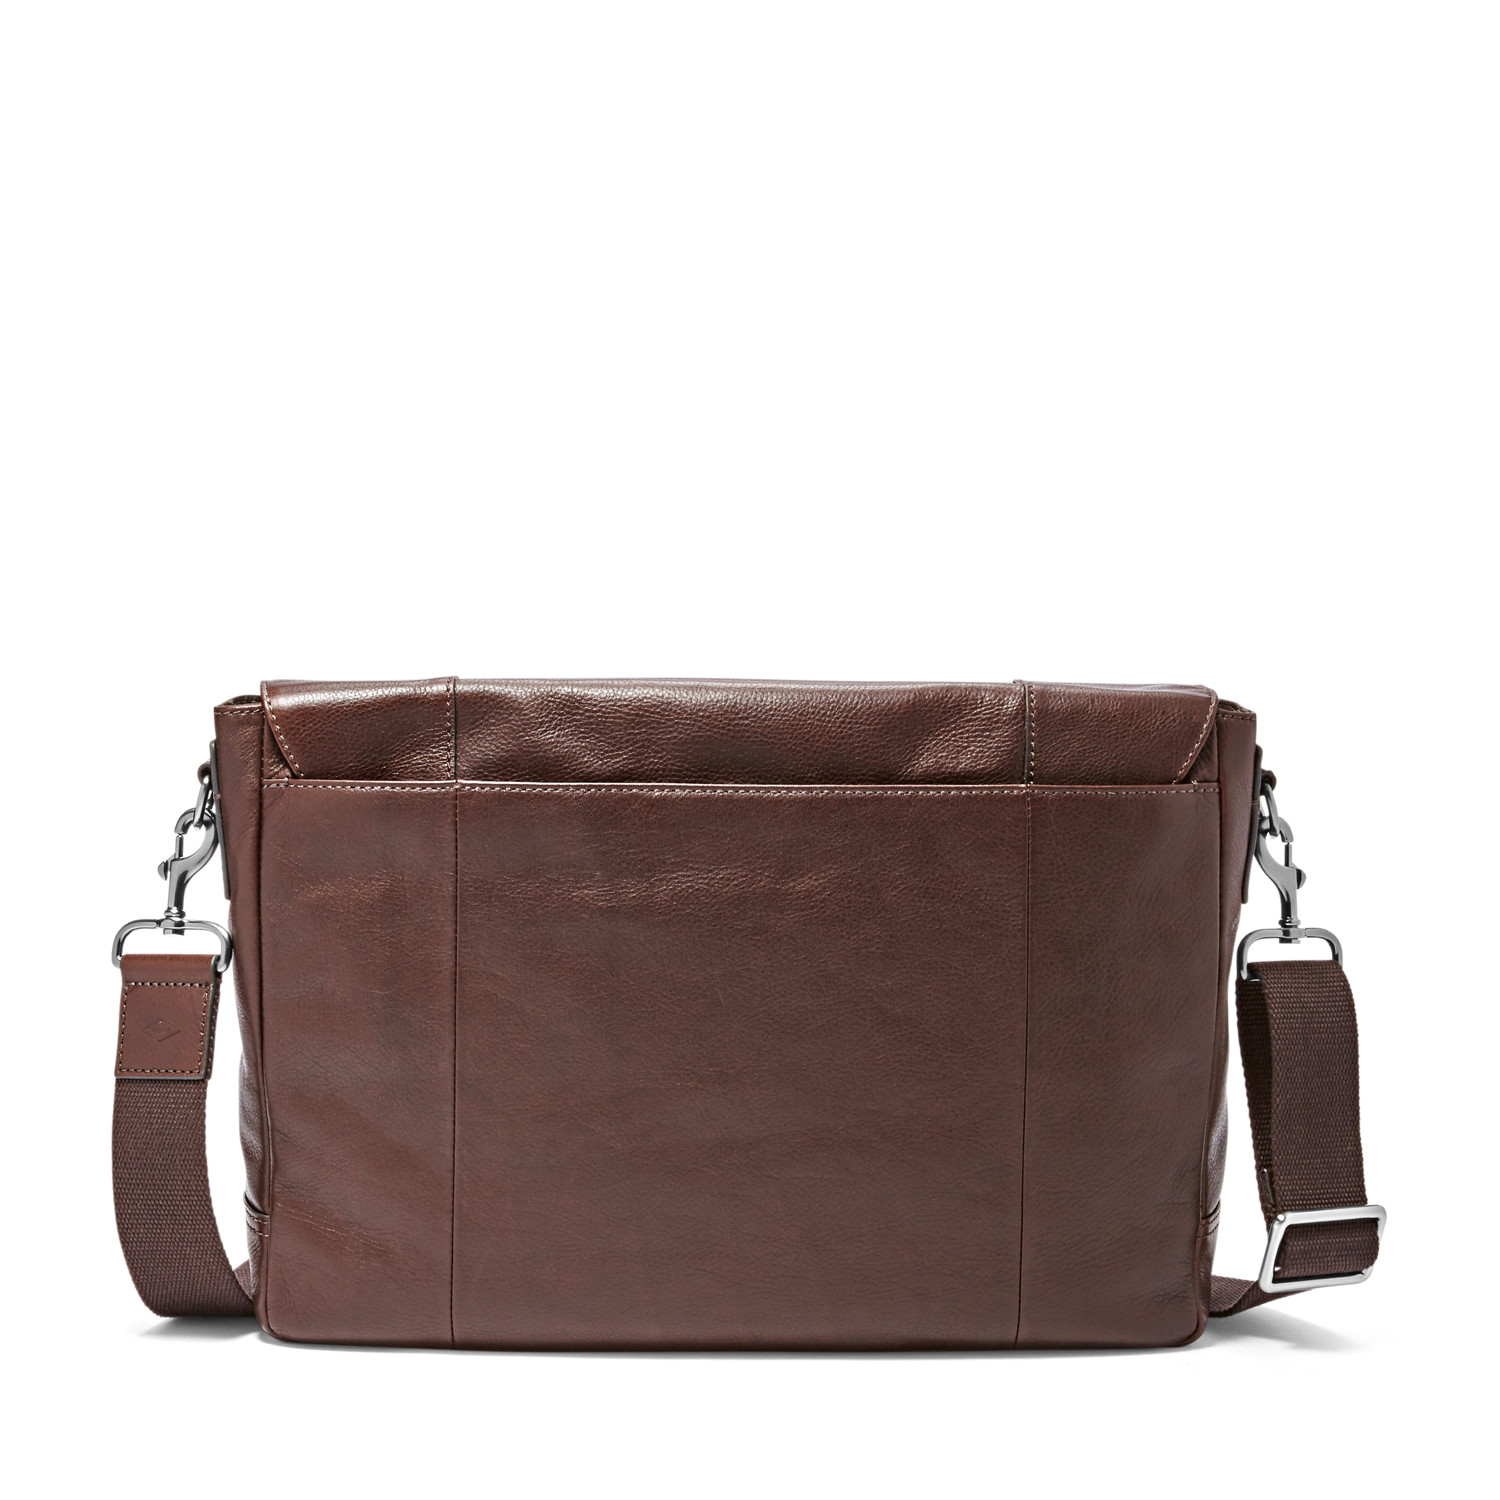 Buy Leather Fossil messenger bags pictures trends